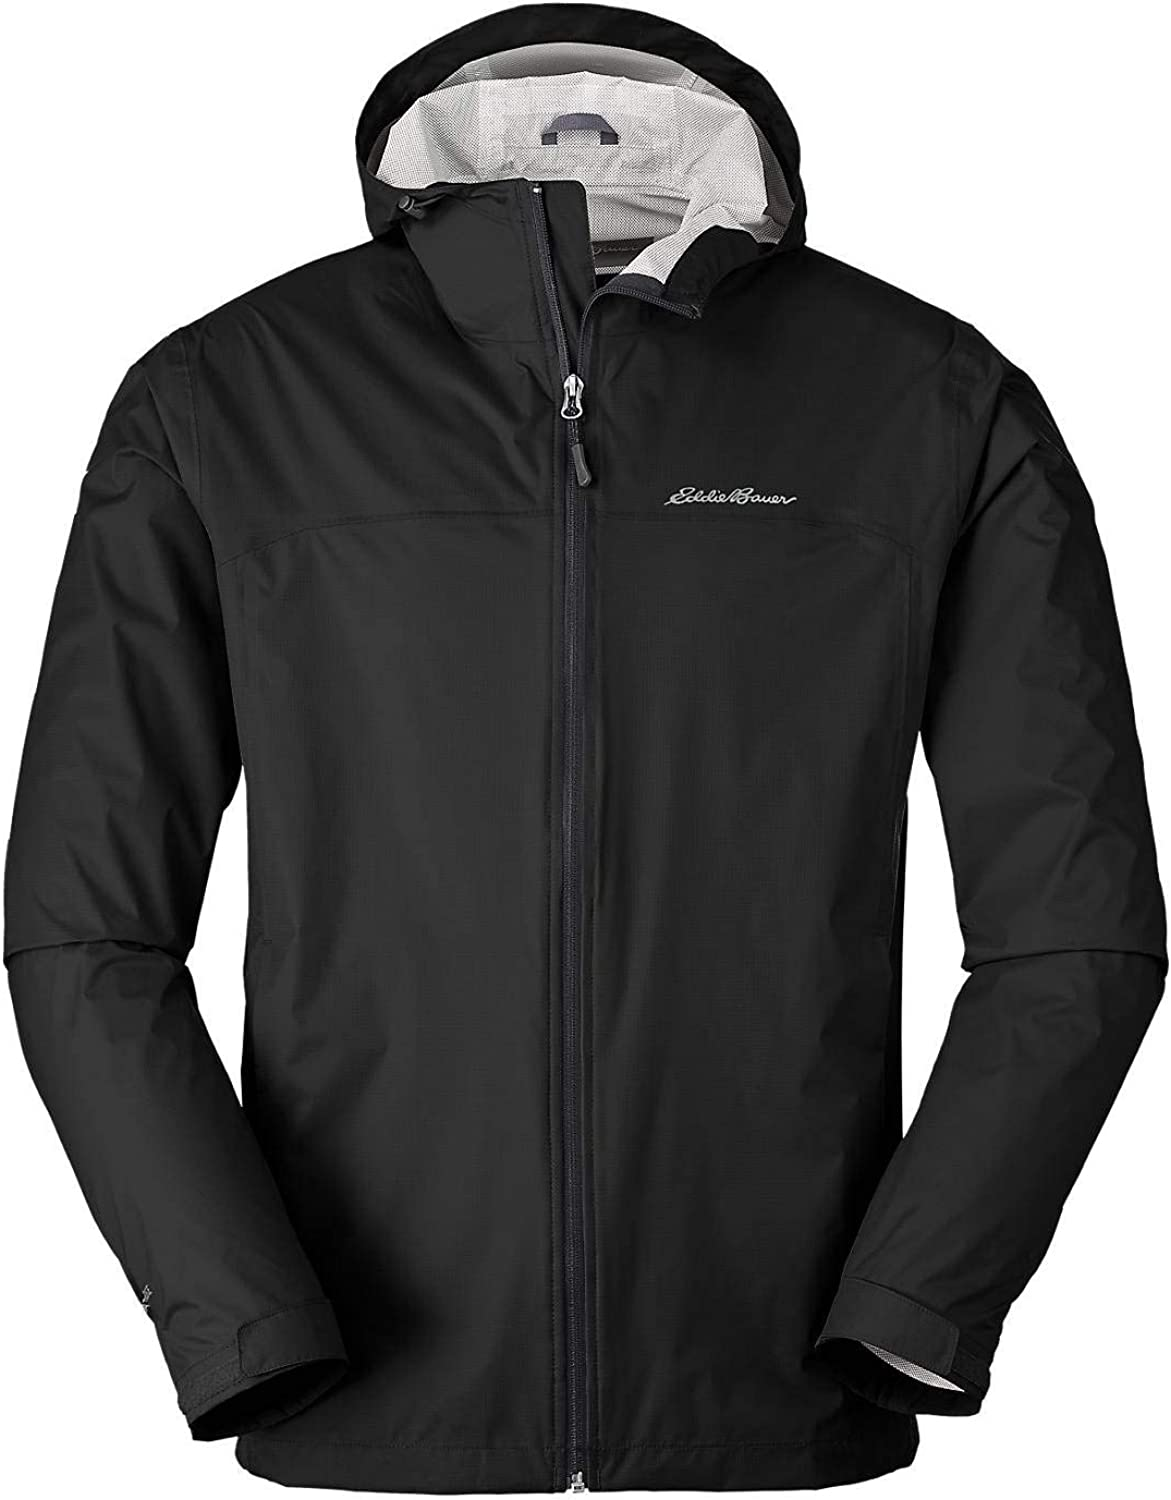 Eddie Bauer Men's Cloud Cap Lightweight Rain Jacket Black Regular XL